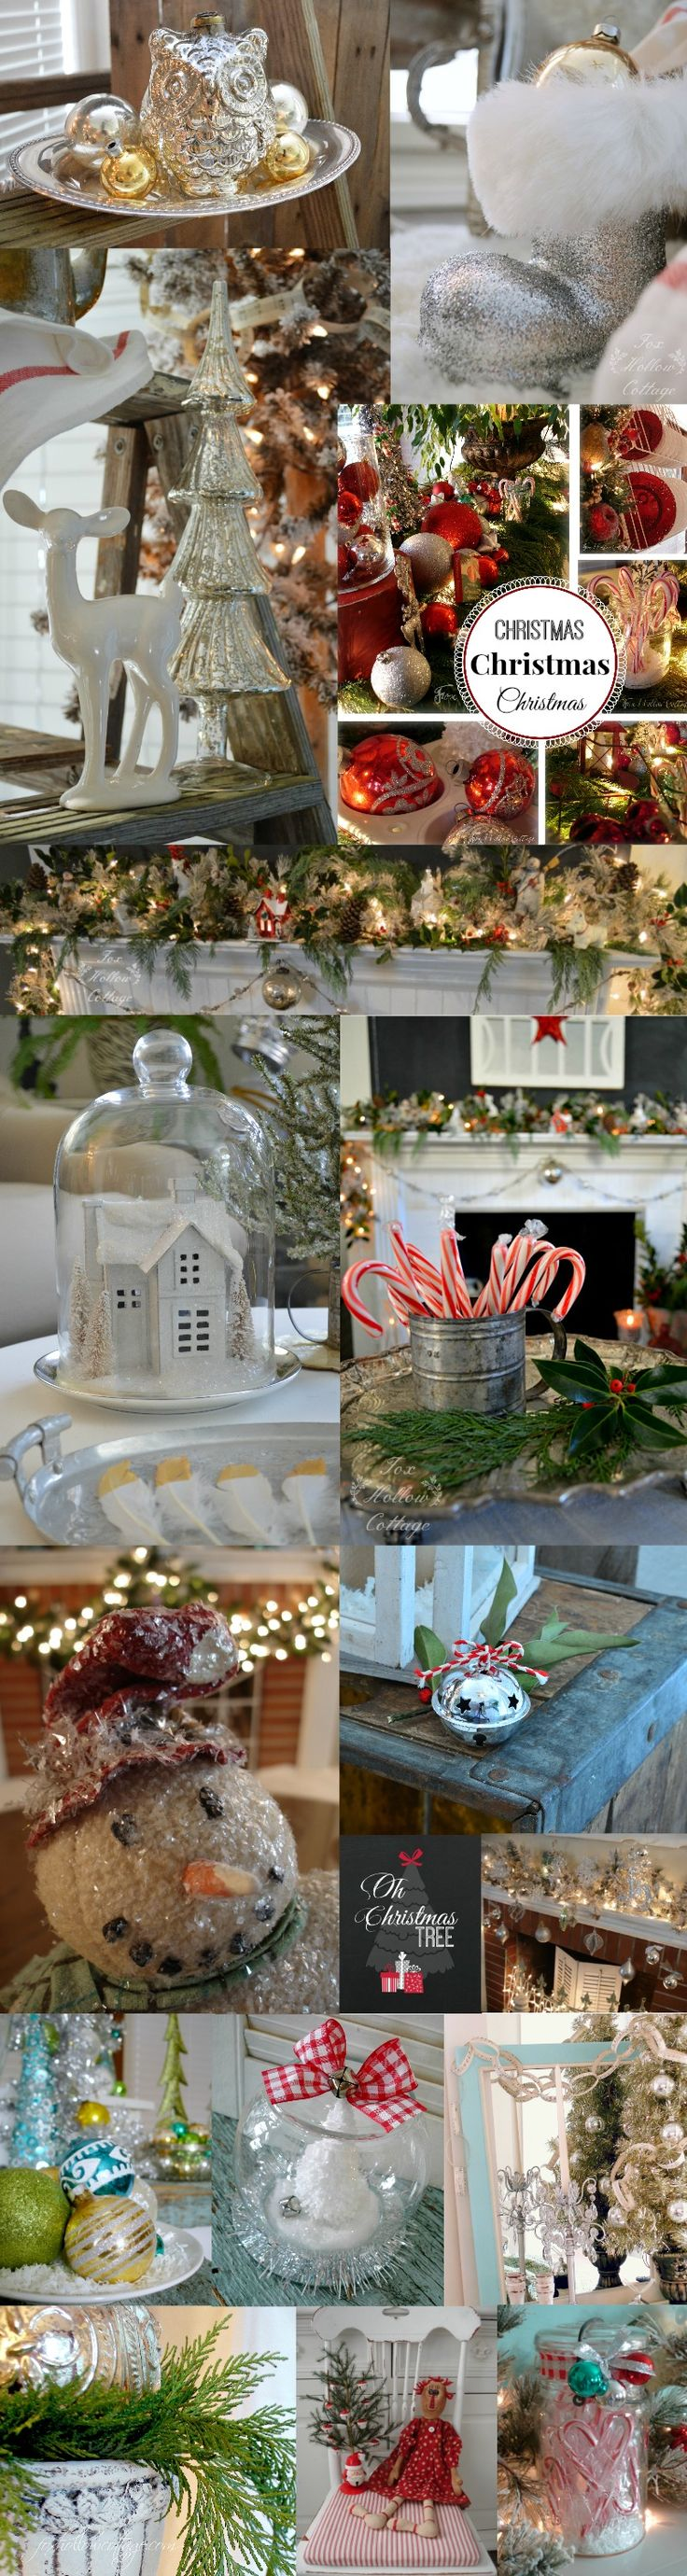 Fox Hollow Cottage Christmas: budget crafts, free printables and variety of decorating ideas for the holidays - #Christmas